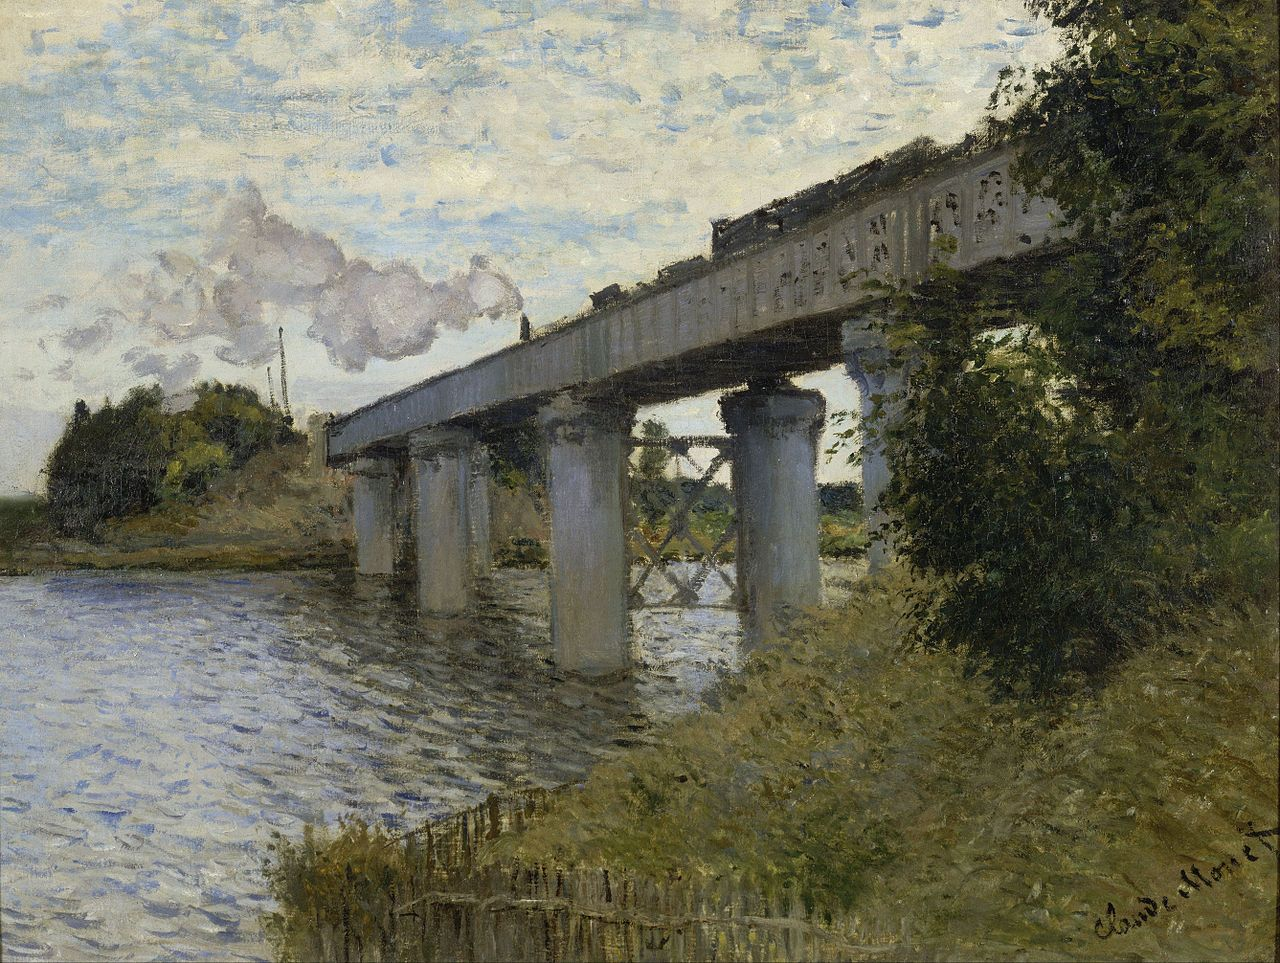 The Railroad Bridge in Argenteuil